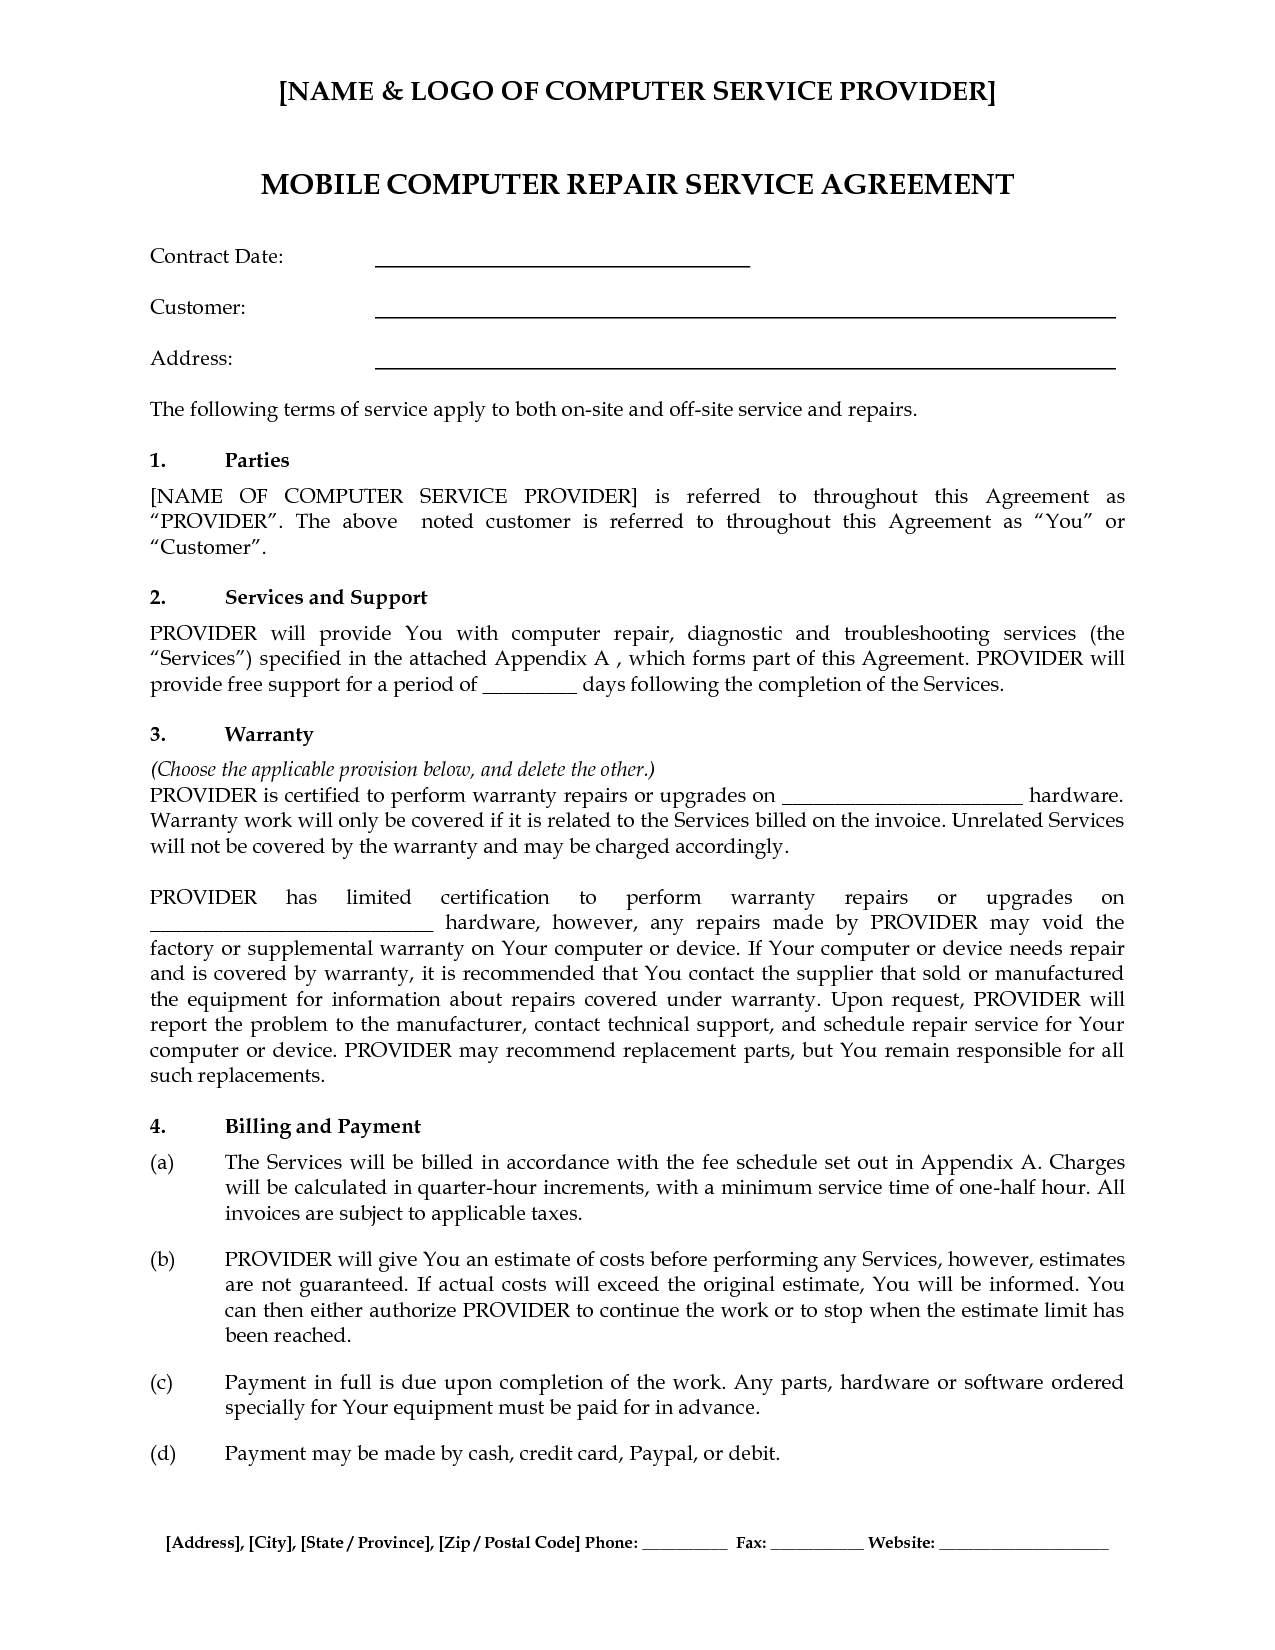 Computer Support Computer Support Service Agreement